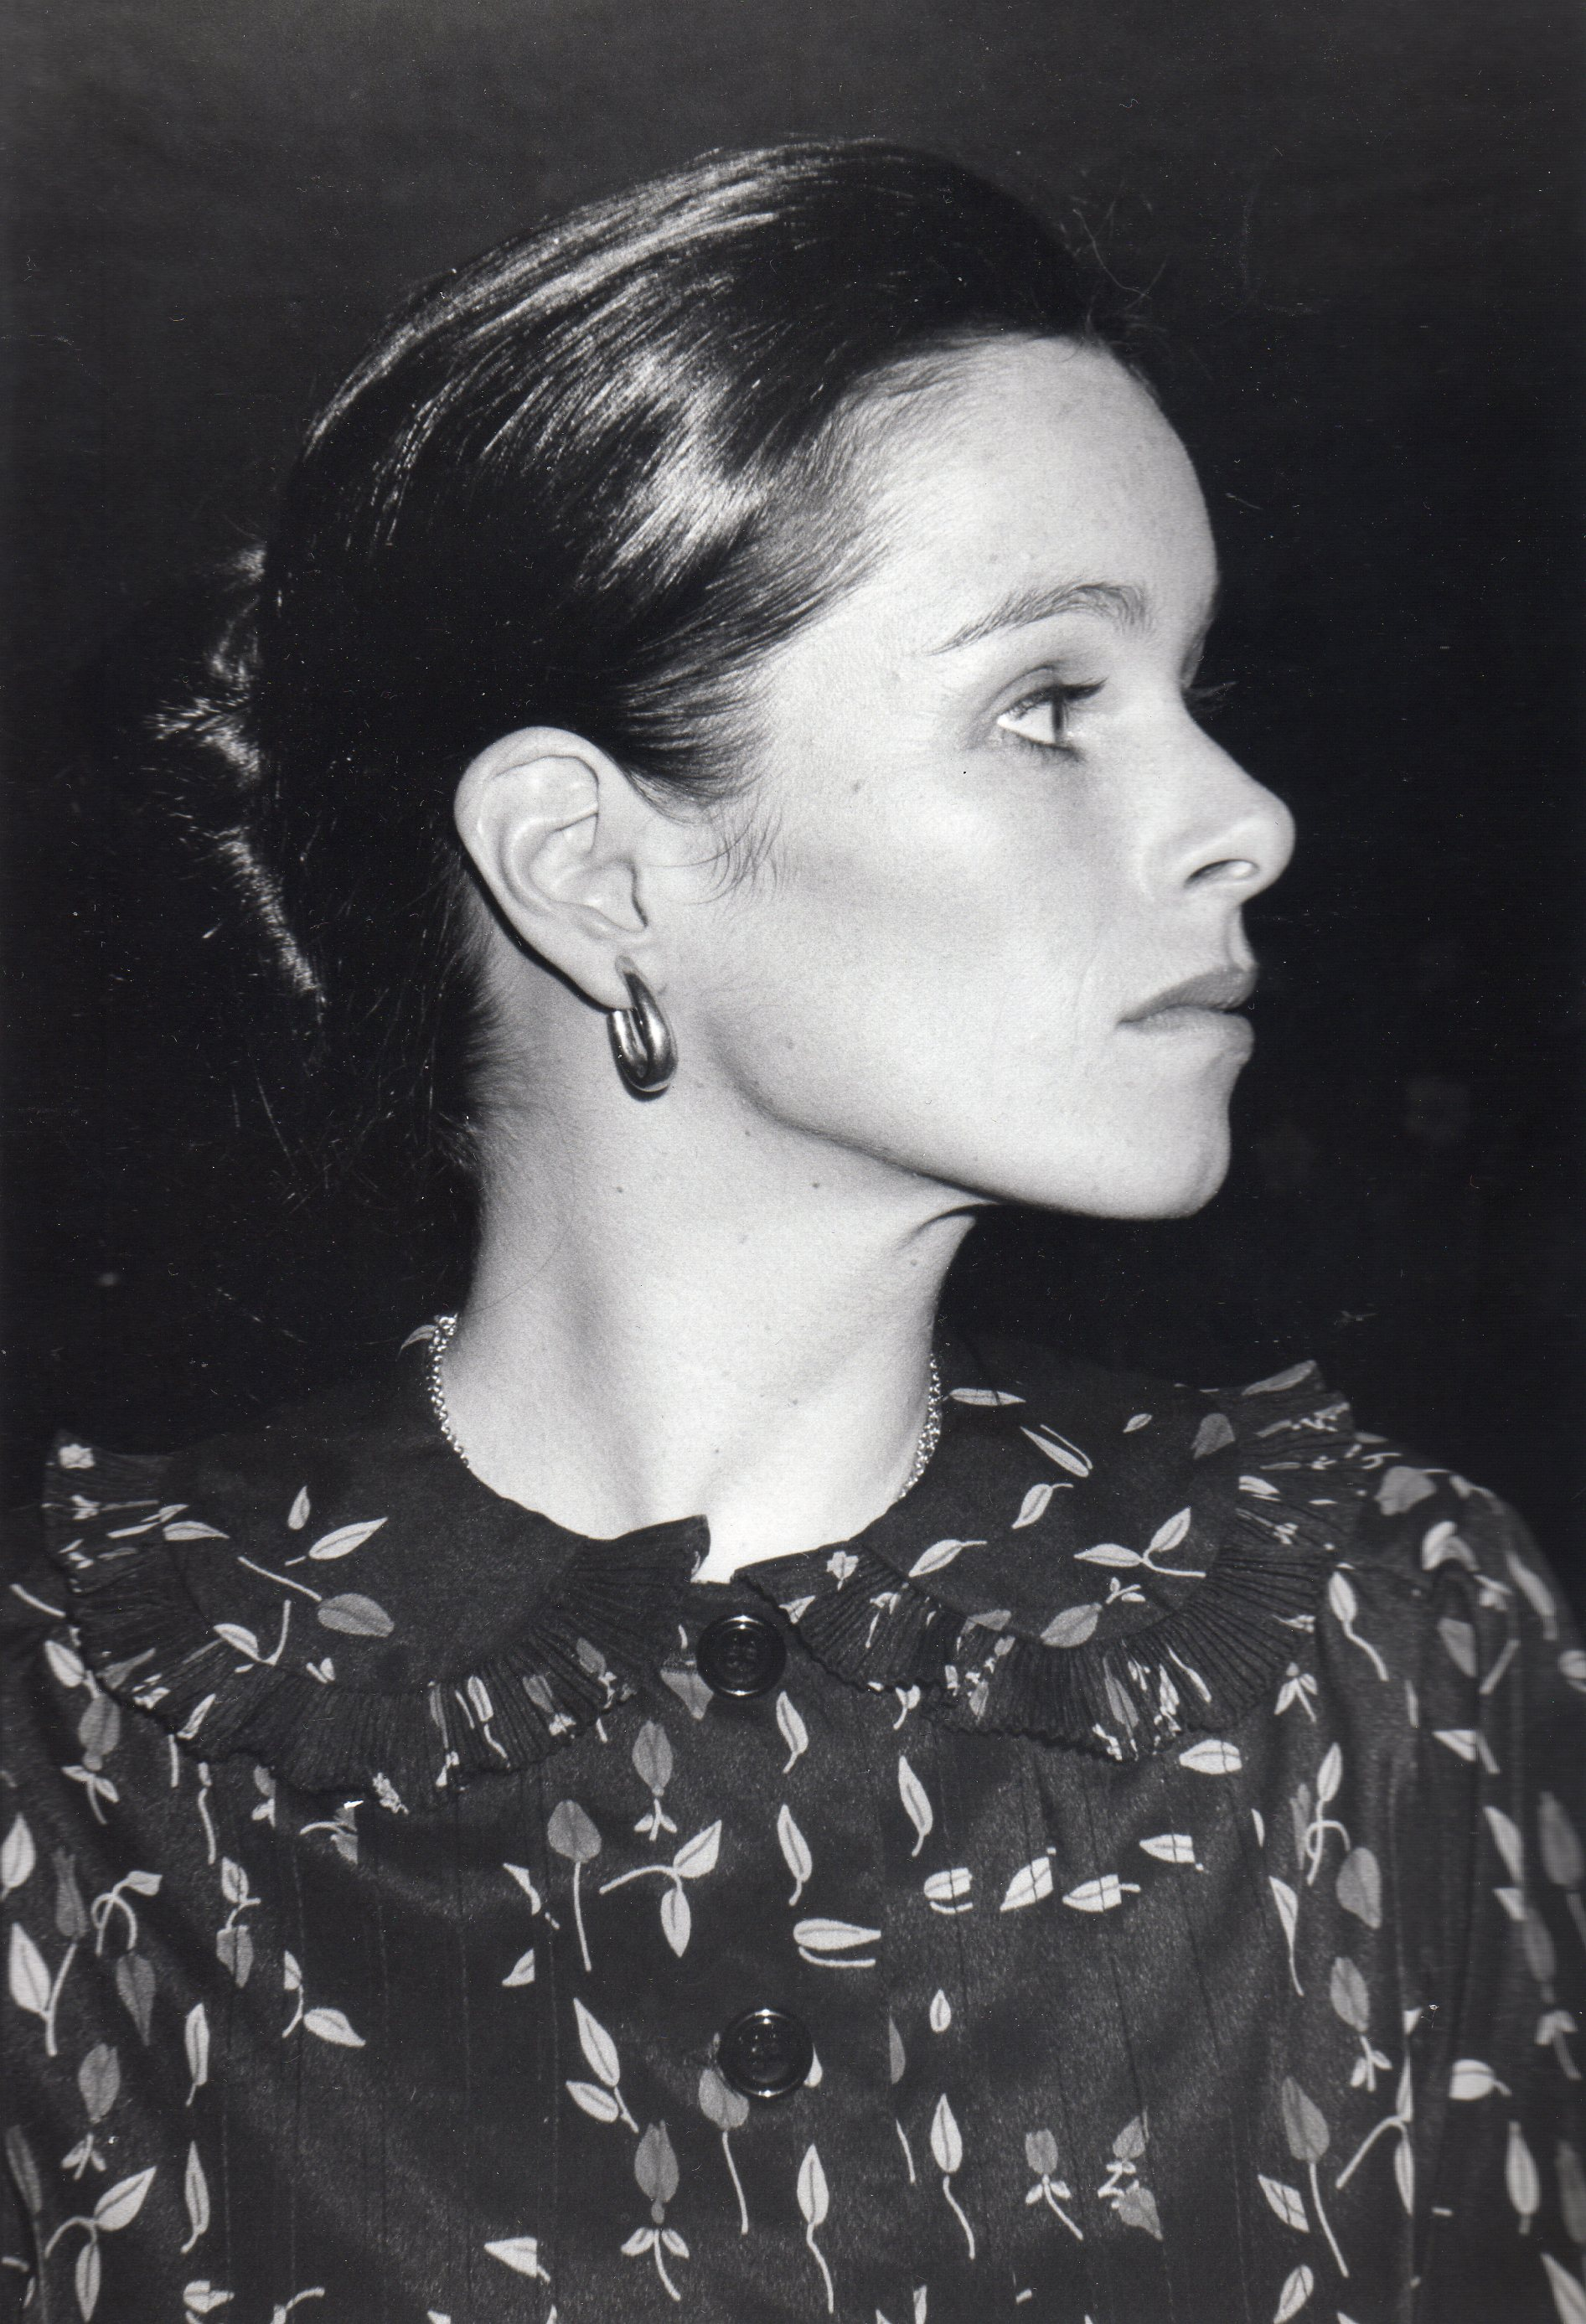 Geraldine Chaplin (born 1944 (born in Santa Monica, California, United States) Geraldine Chaplin (born 1944 (born in Santa Monica, California, United States) new foto